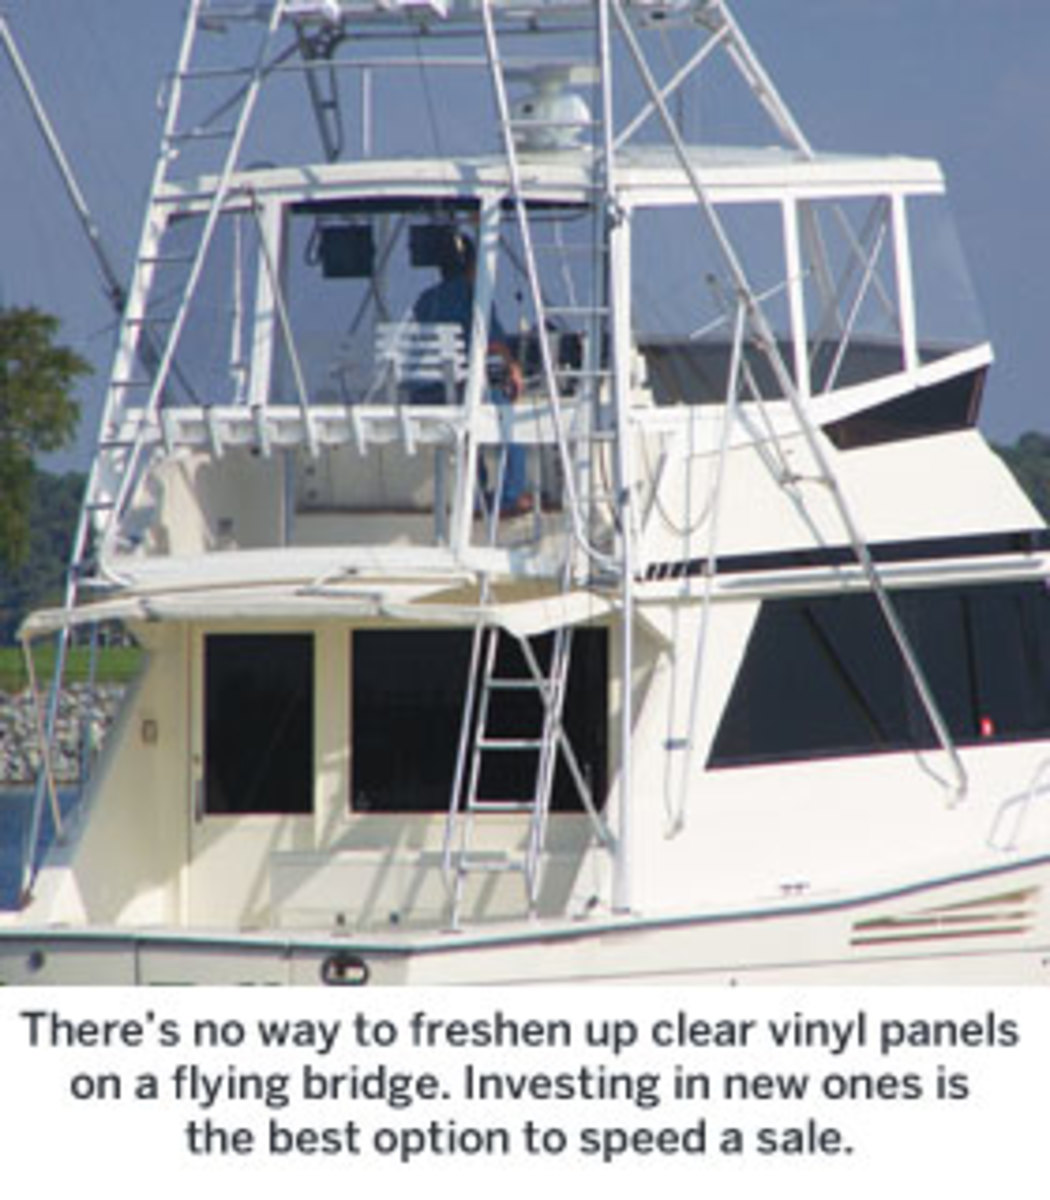 Vinyl panels on a flybridge